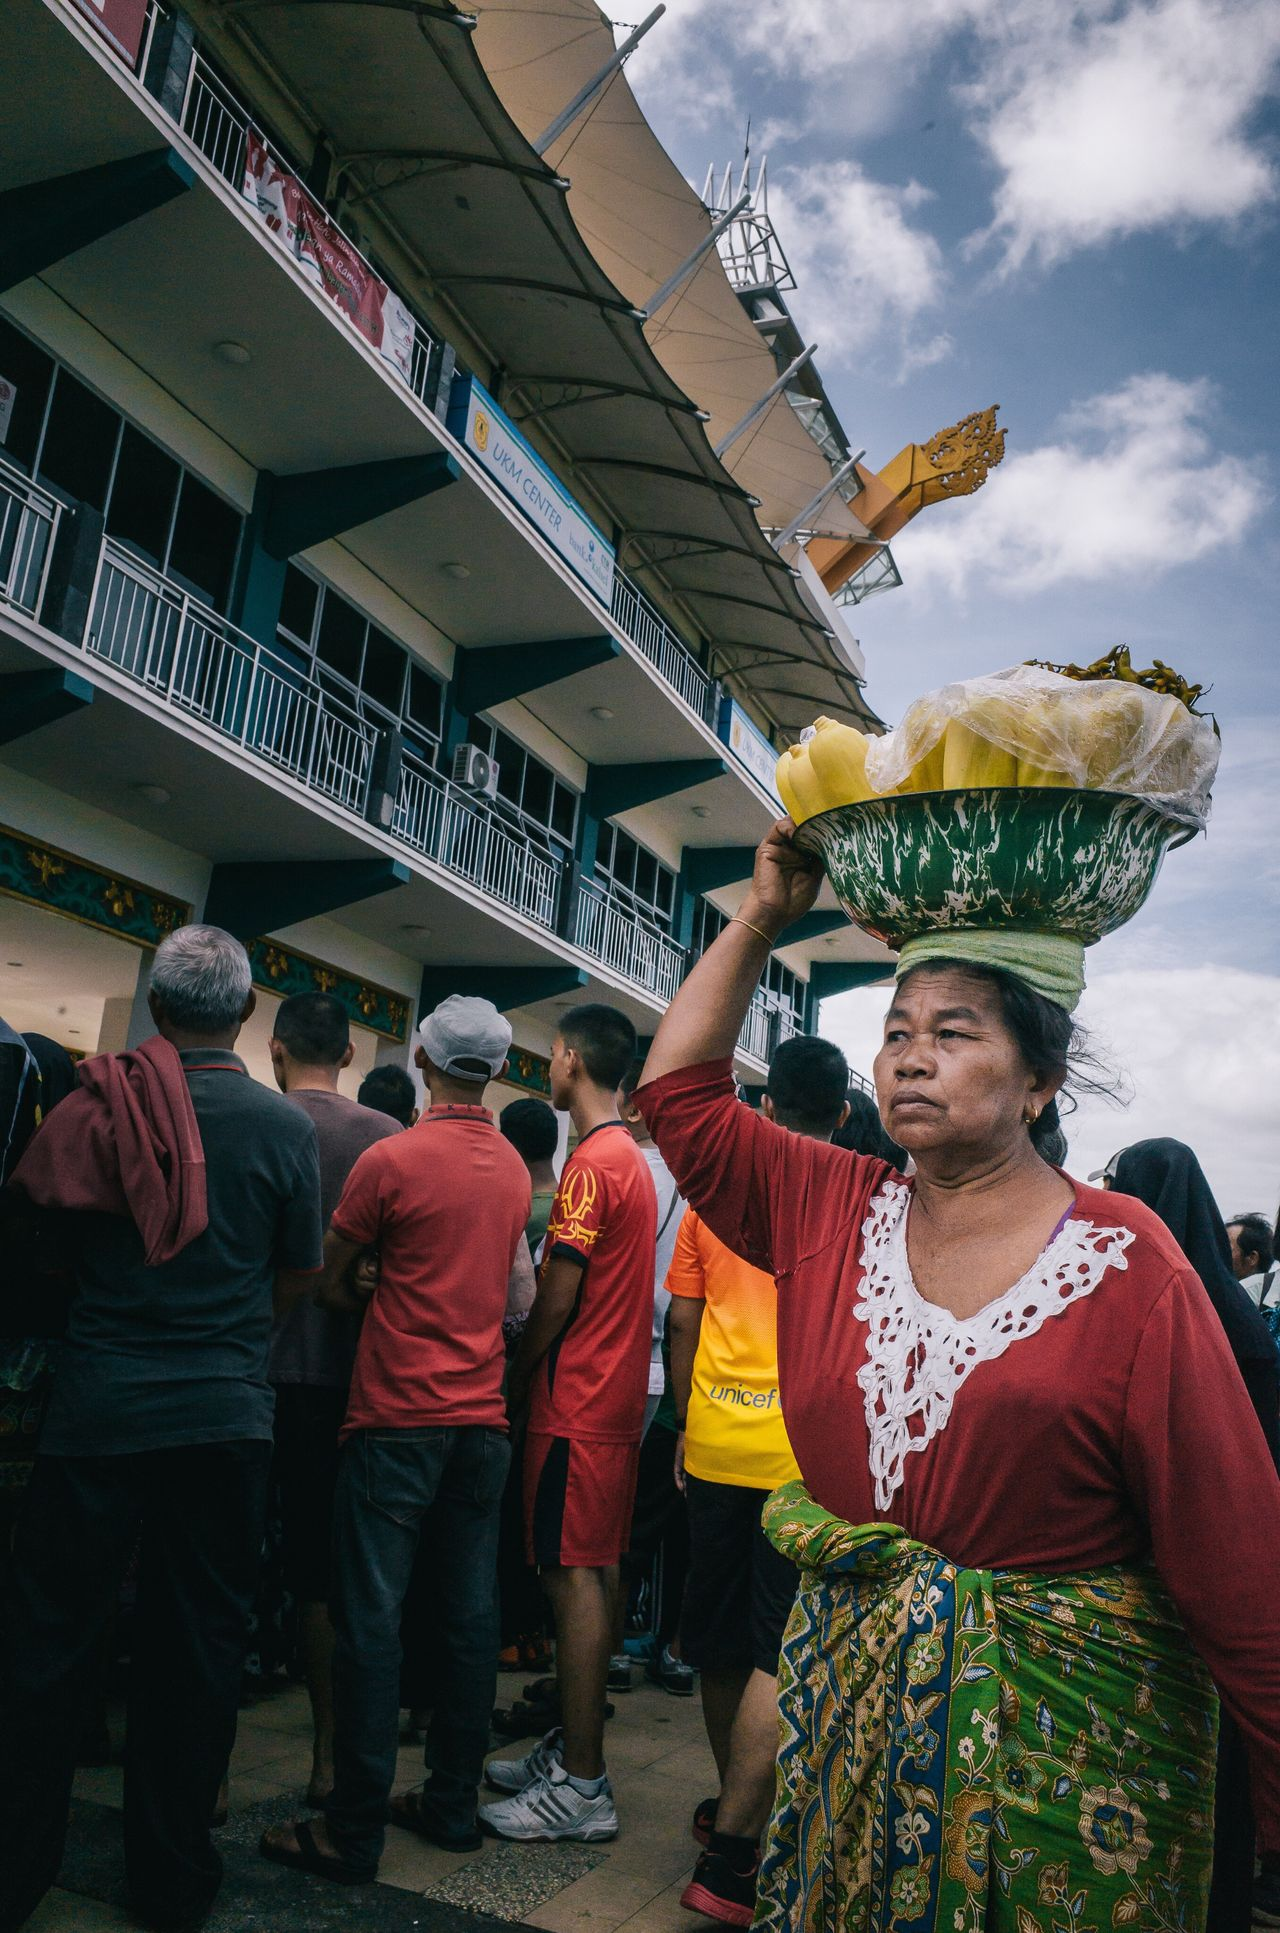 A woman selling corn on the cob Traditional Clothing Lifestyles Real People Women Architecture Sky Day Adult Indoors  People Adults Only The Street Photographer - 2017 EyeEm Awards